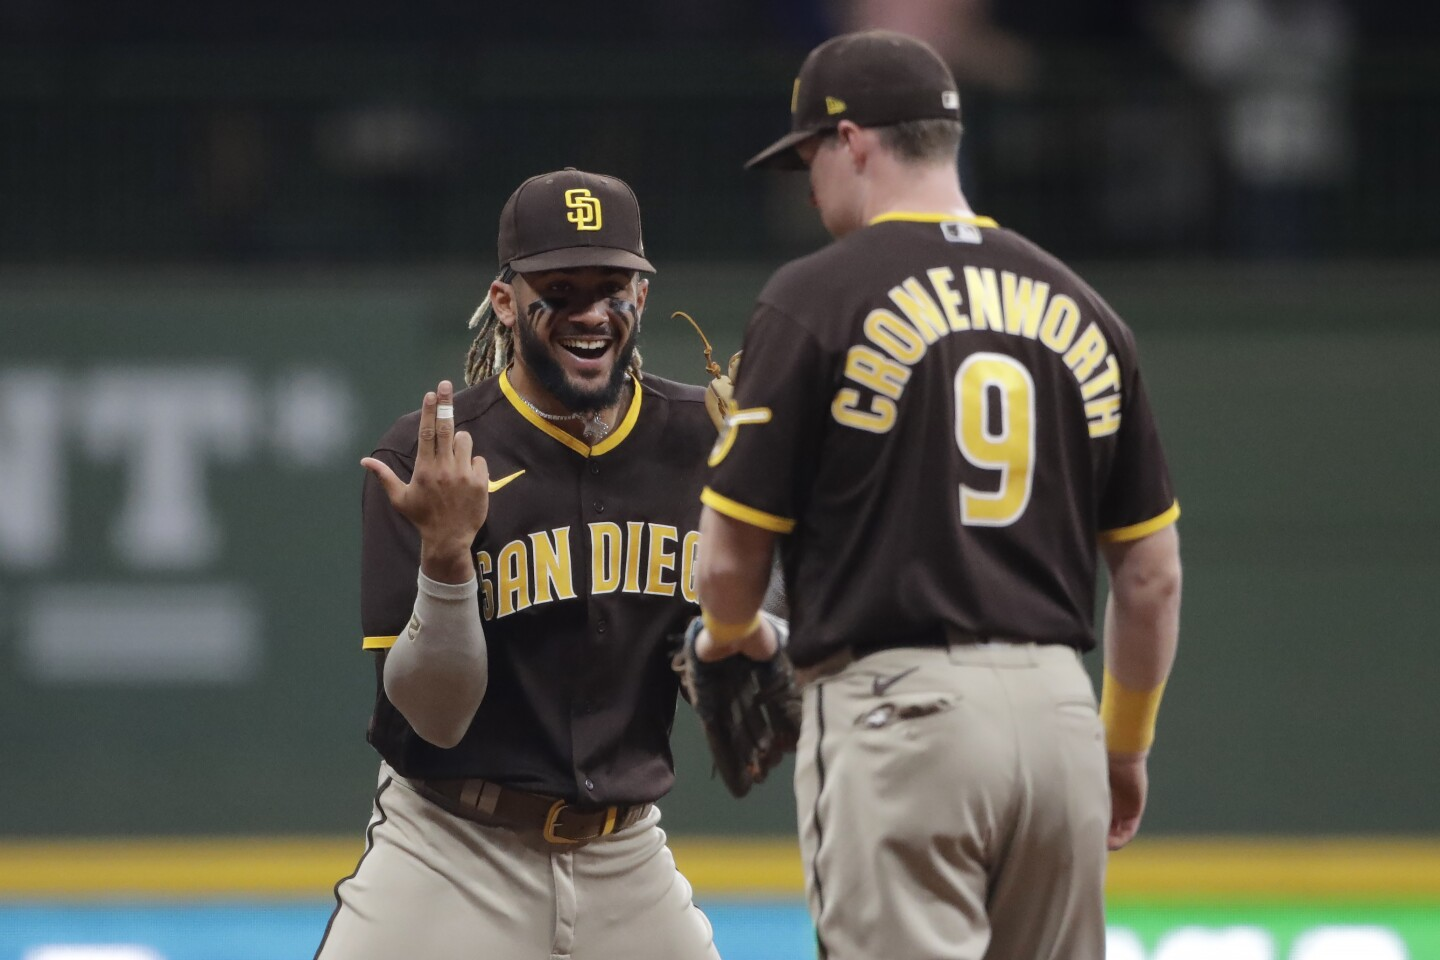 San Diego Padres' Fernando Tatis Jr. laughs with Jake Cronenworth (9) after a baseball game against the Milwaukee Brewers Wednesday, May 26, 2021, in Milwaukee. (AP Photo/Aaron Gash)